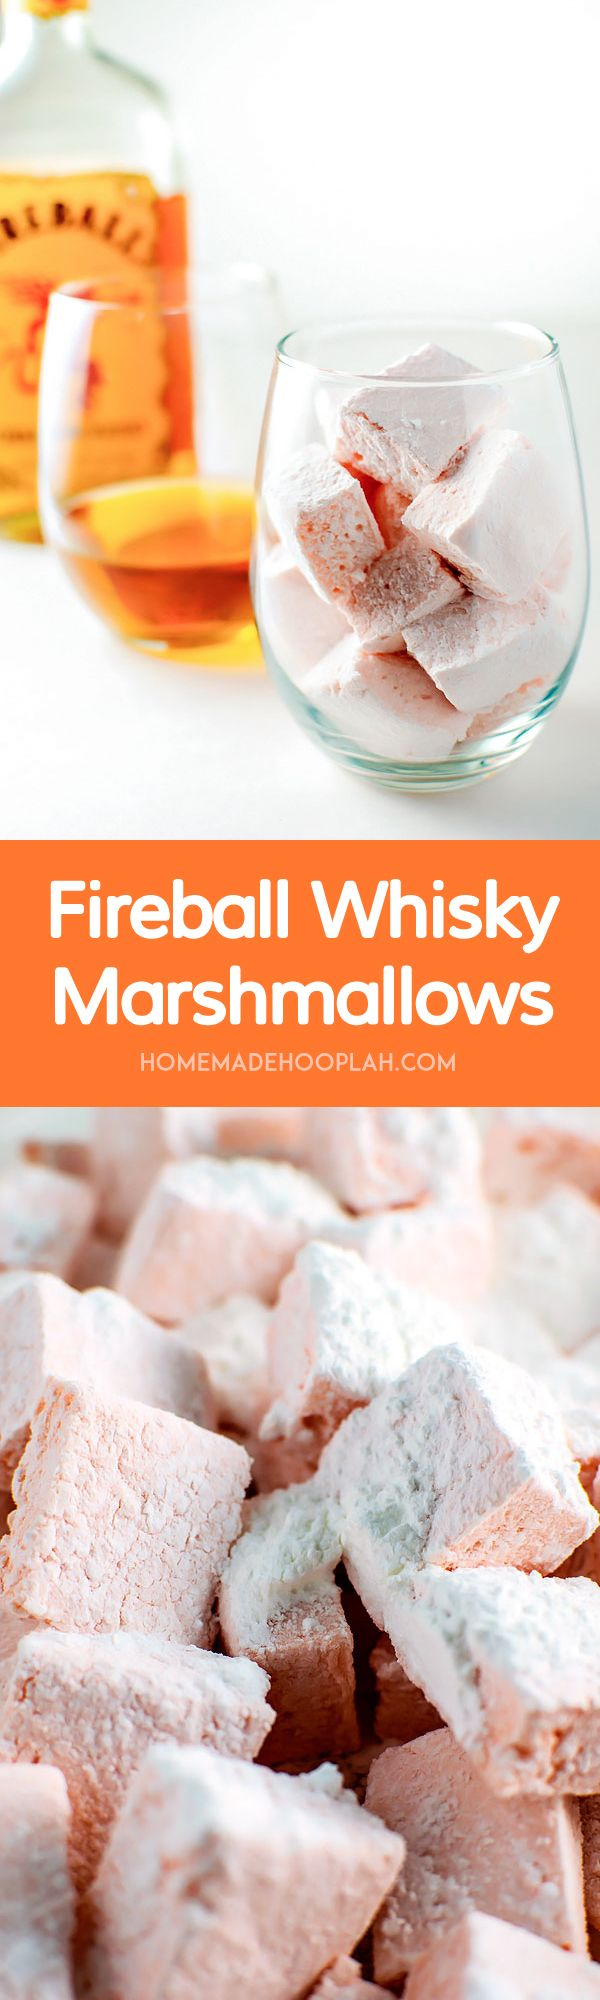 Fireball Whisky Marshmallows! Homemade marshmallows with the spicy kick of the Fireball Whisky tucked within the sweet, sugary fluff. | HomemadeHooplah.com